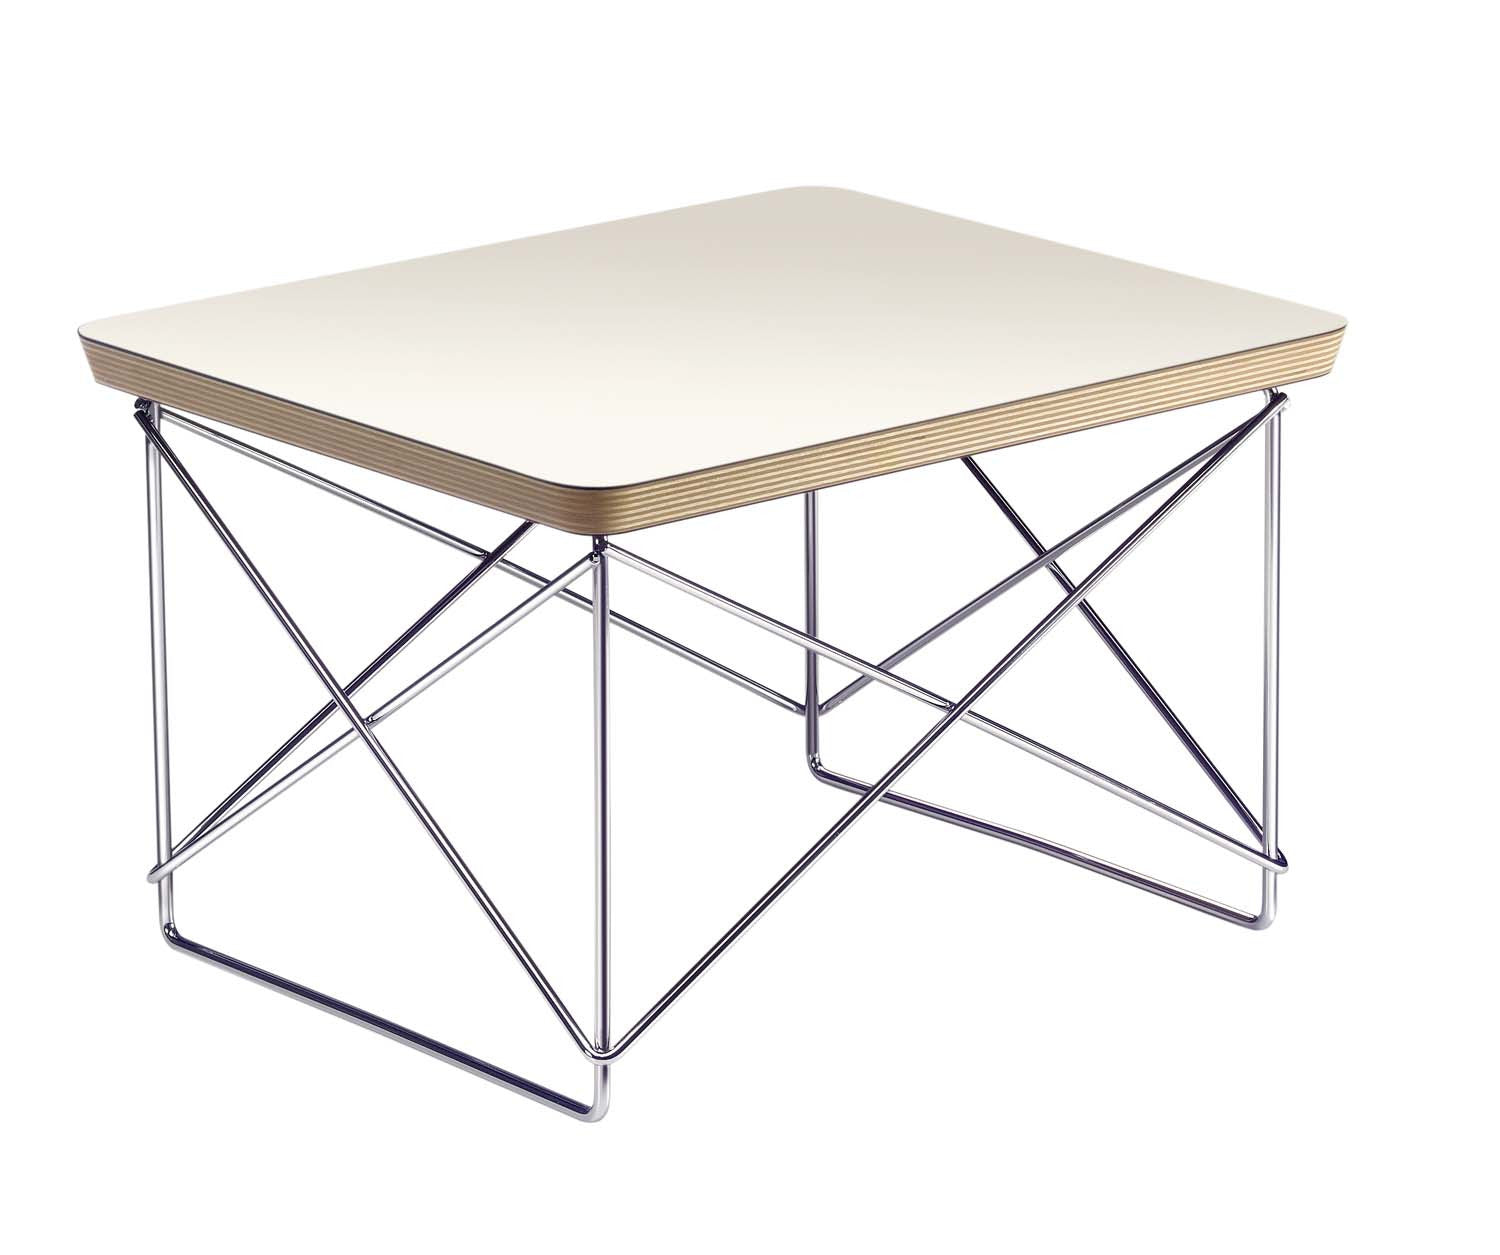 Eames ltr occasional table couch potato company eames ltr occasional table greentooth Gallery